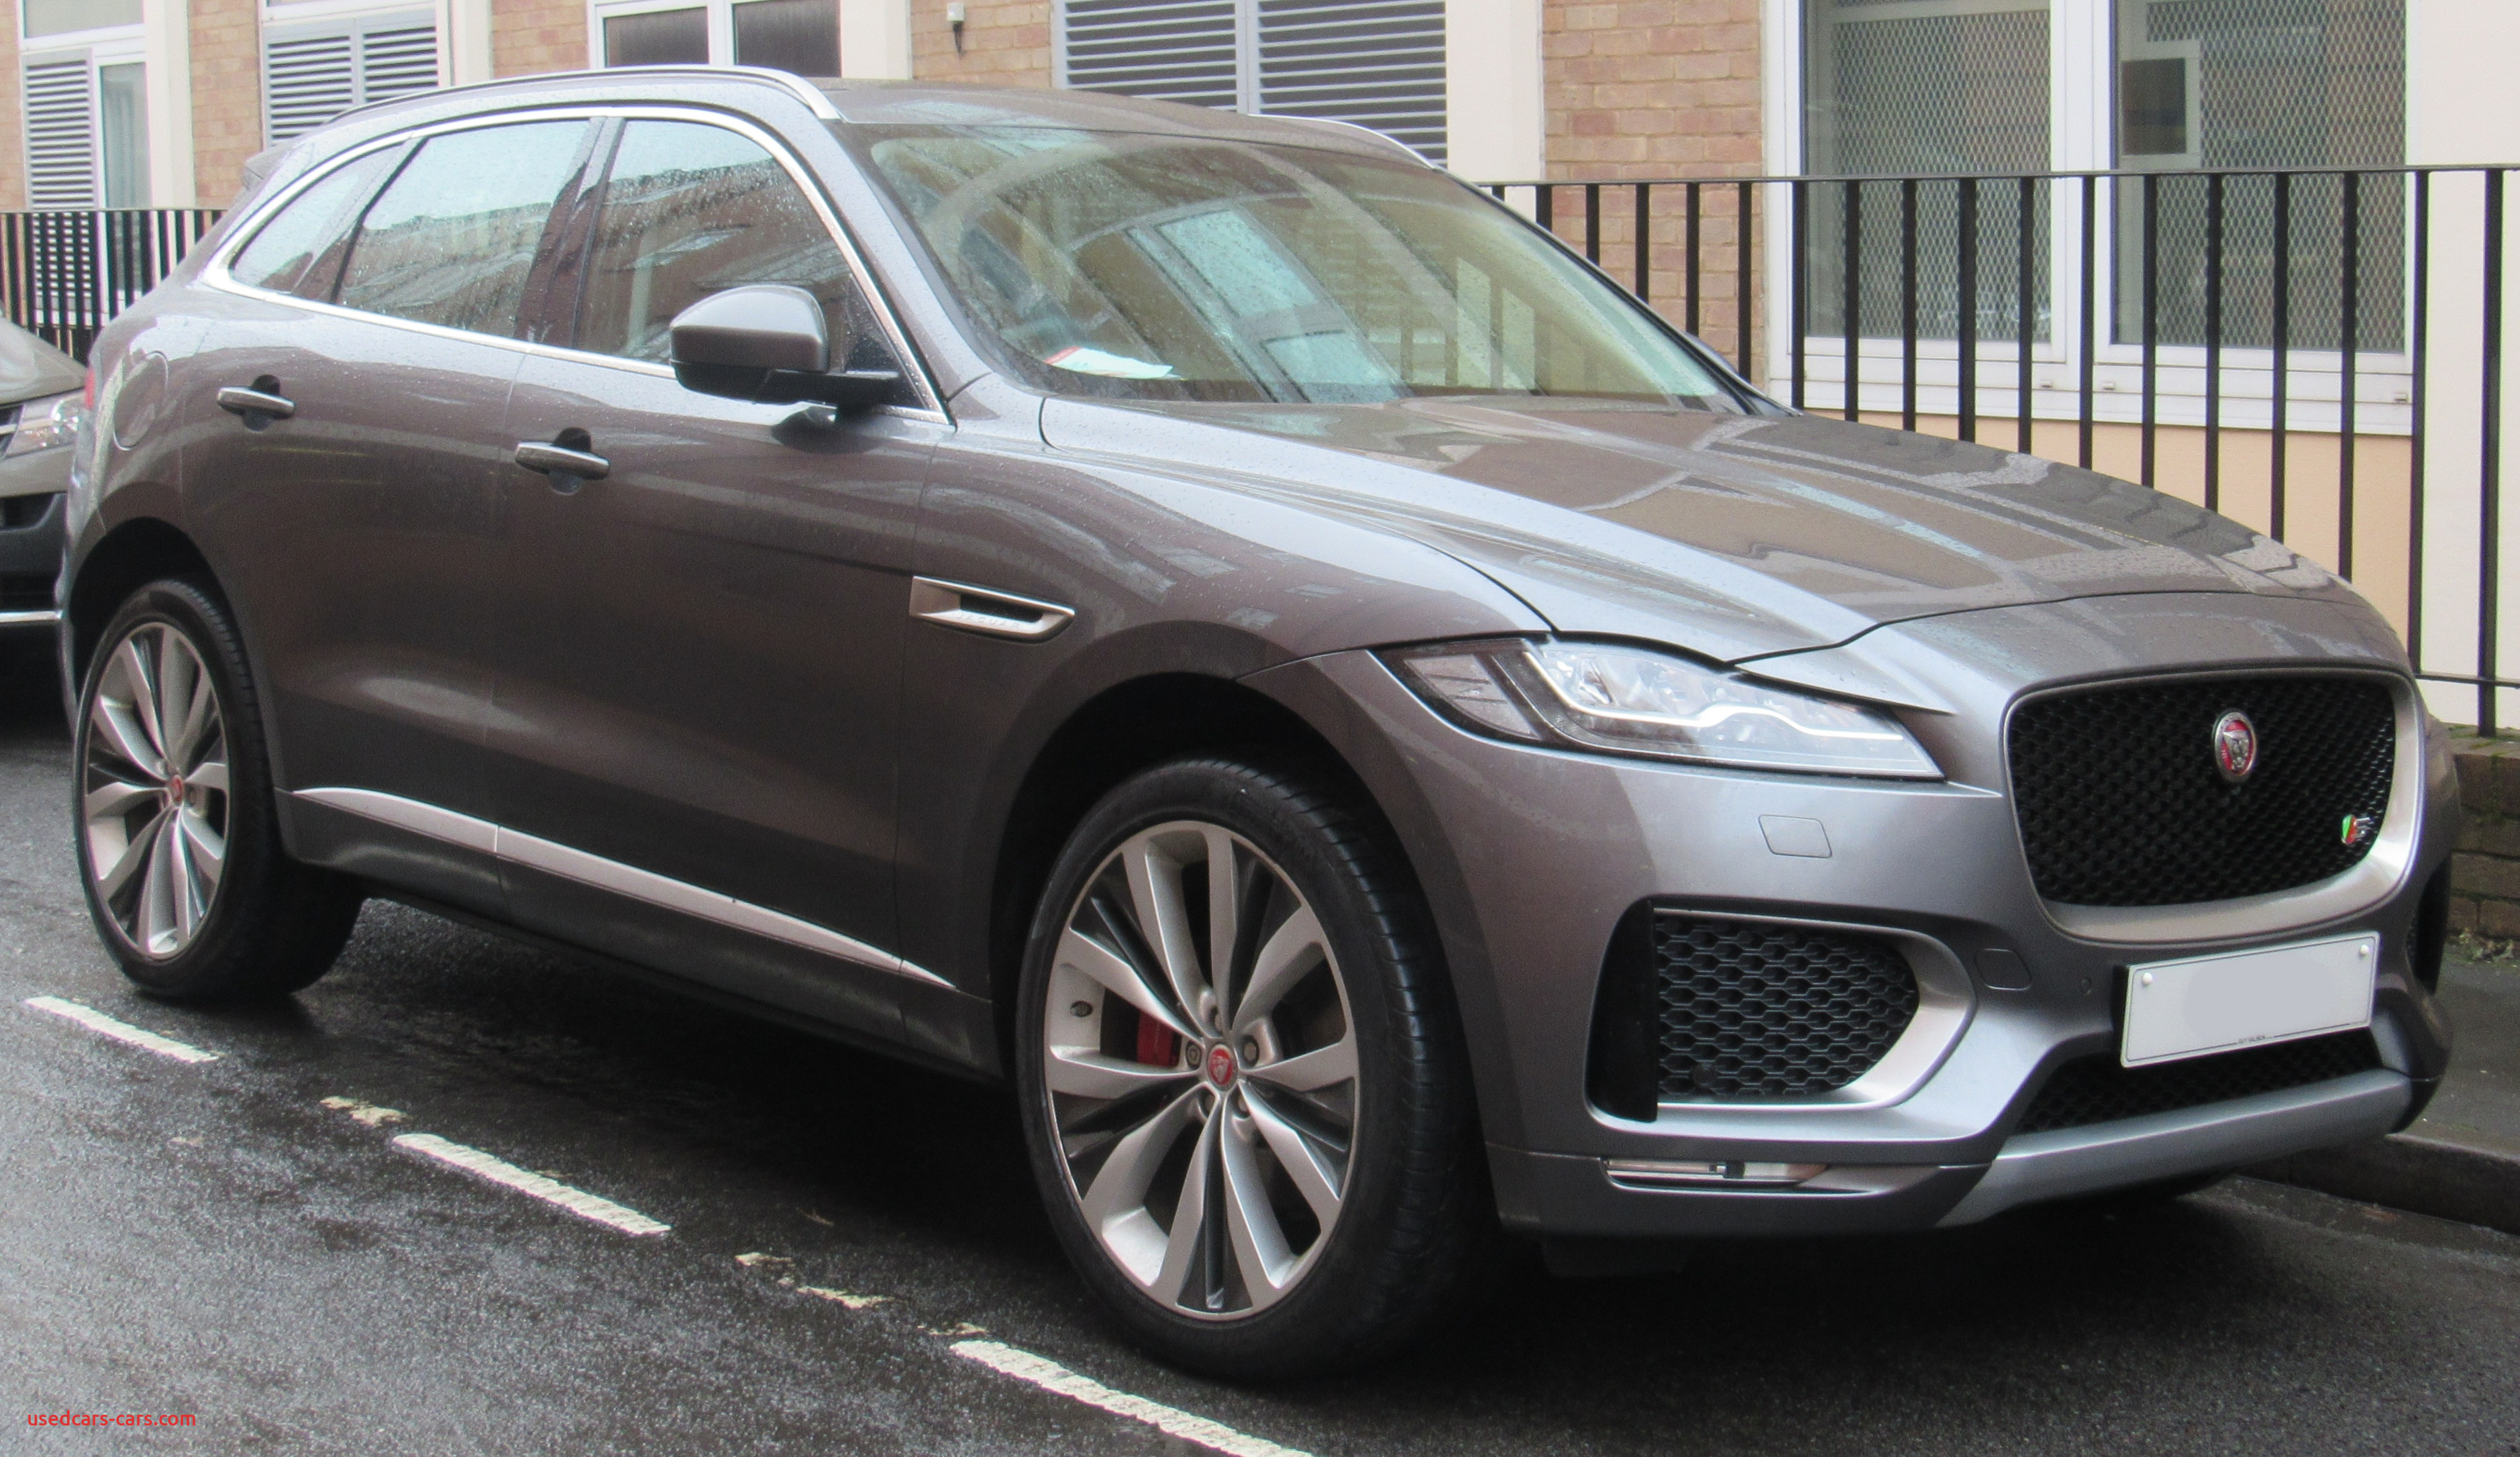 Used Cars for Sale Yeovil New Jaguar Cars Wikiwand